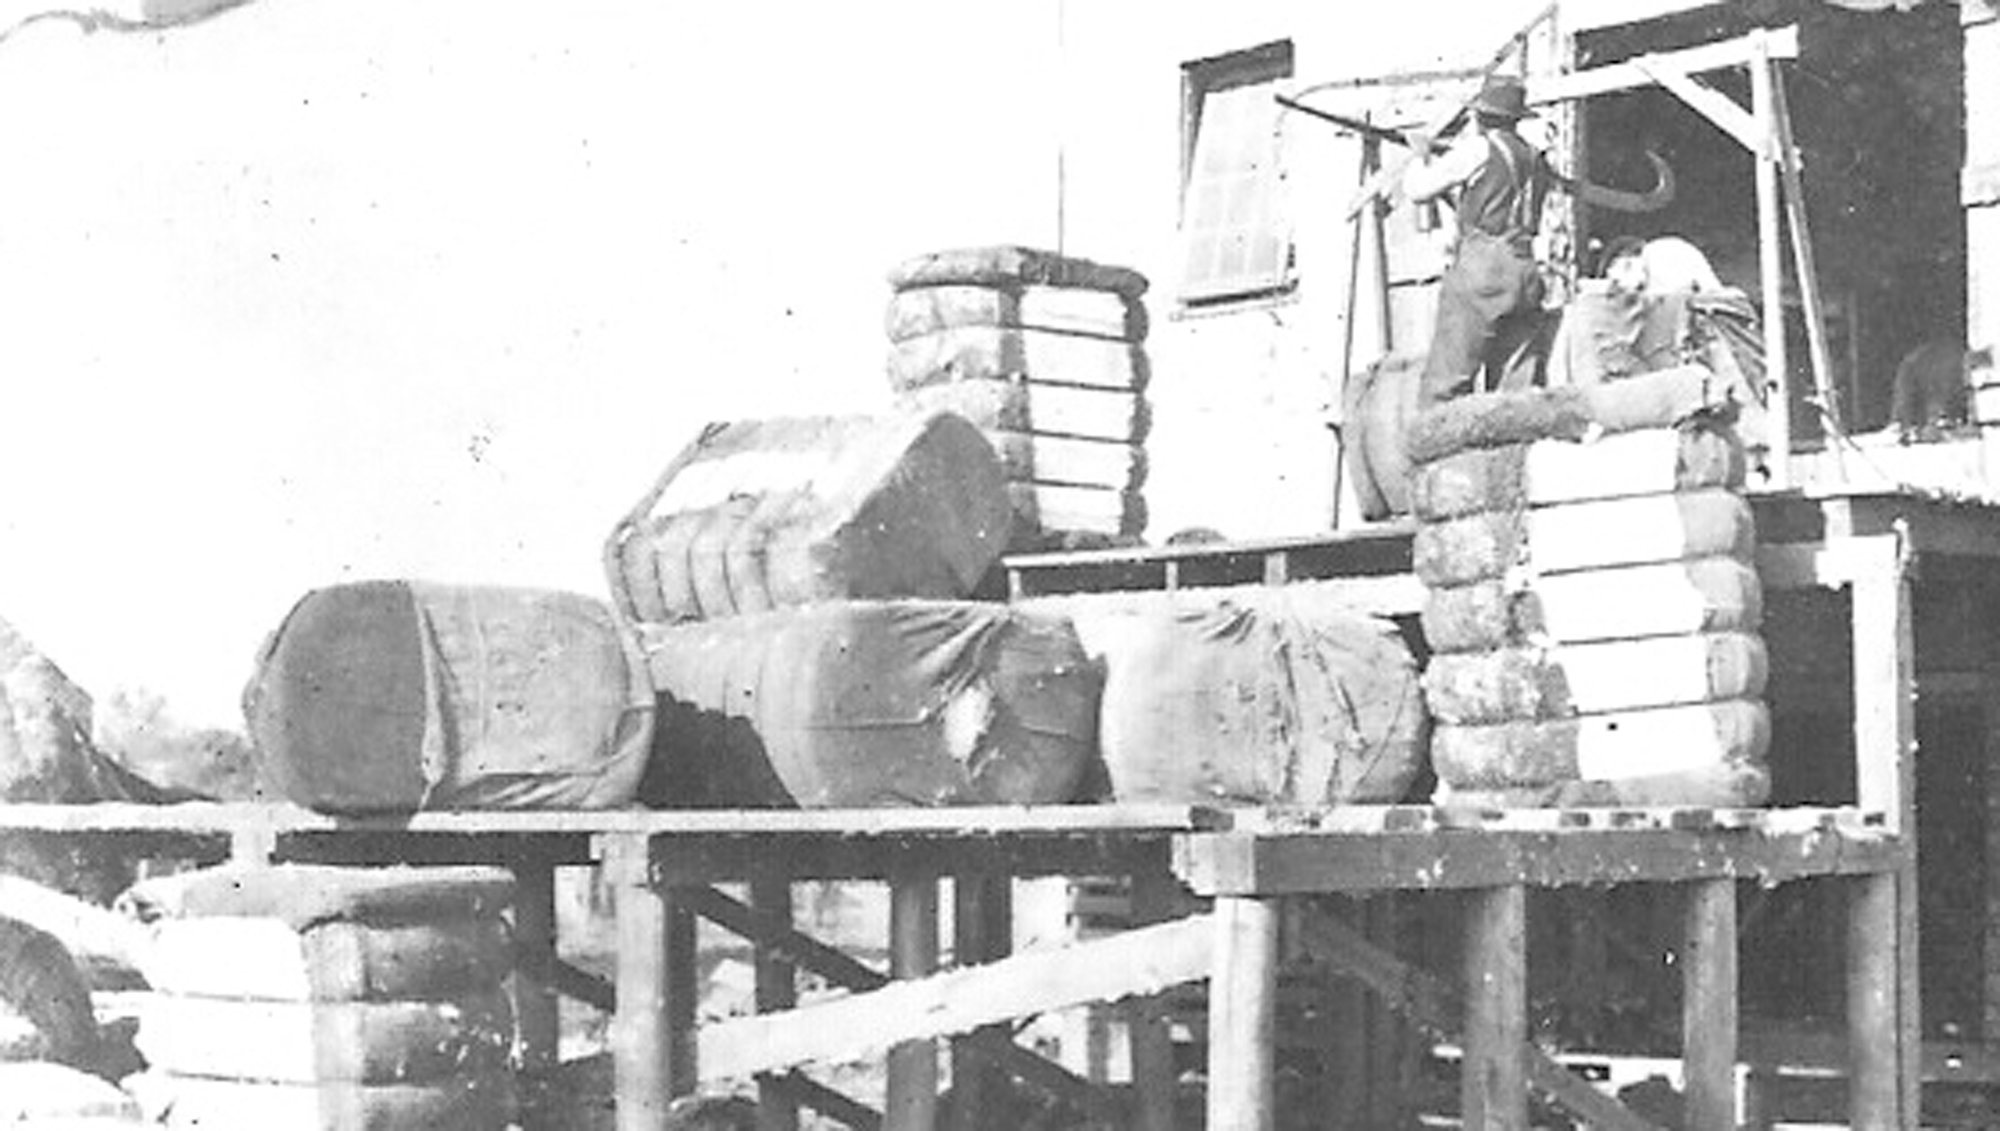 Cotton is stacked on a platform in Sumter.